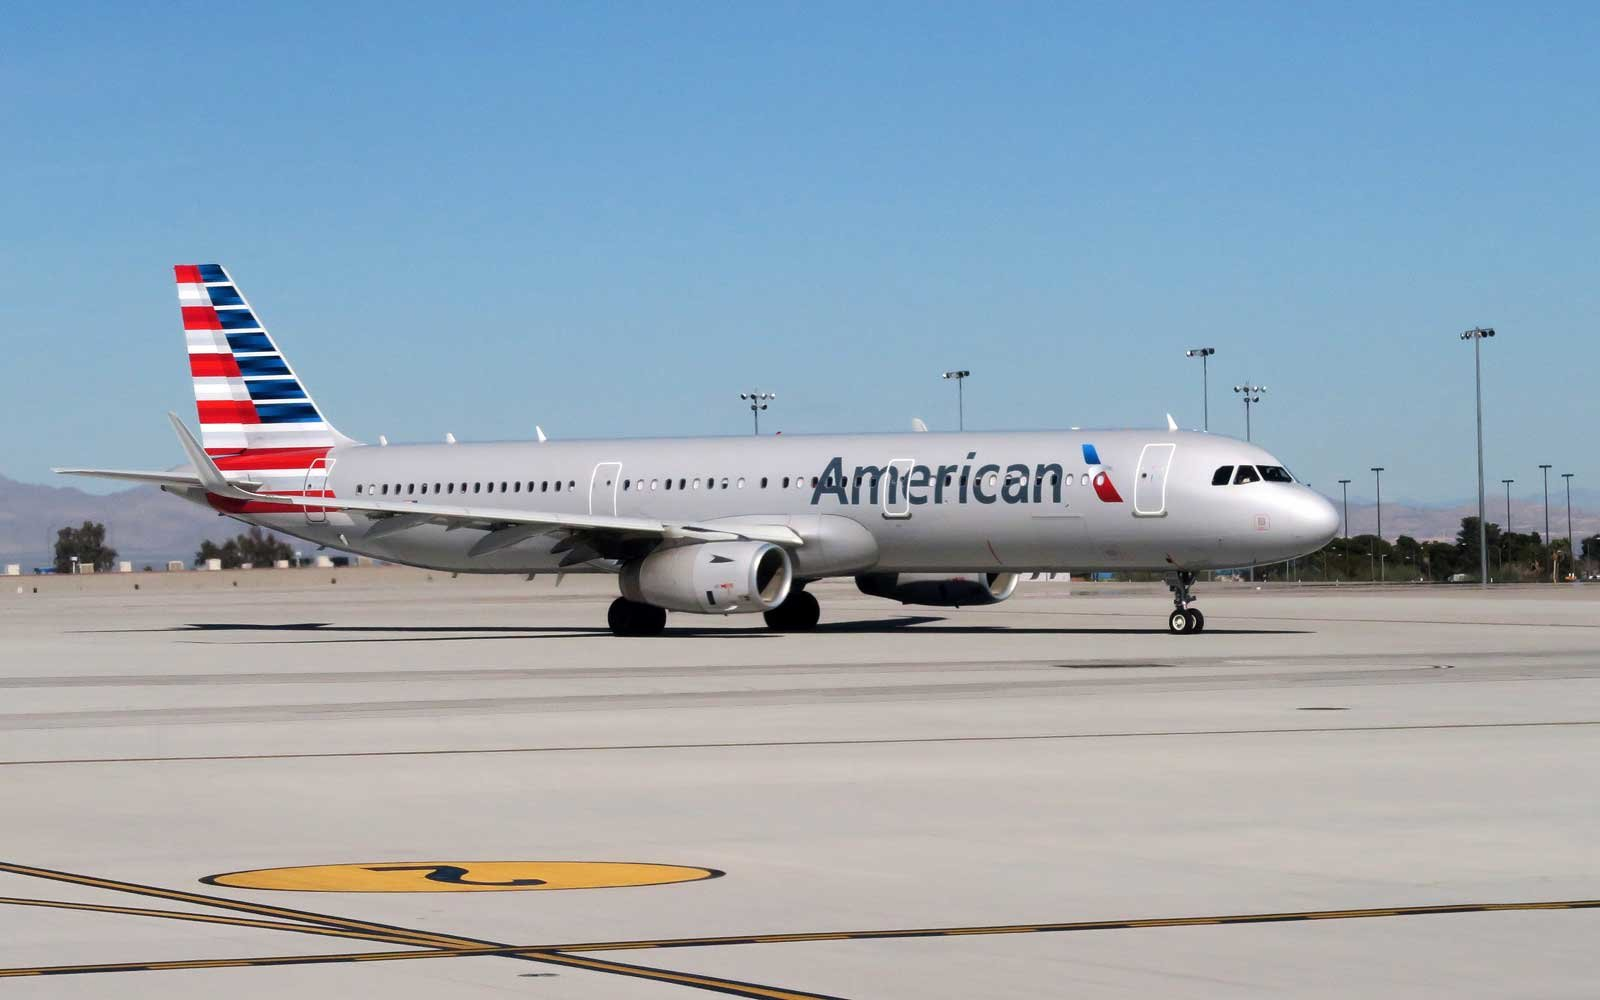 An American Airlines plane sits on the tarmac of McCarran International Airport in Las Vegas, Nevada